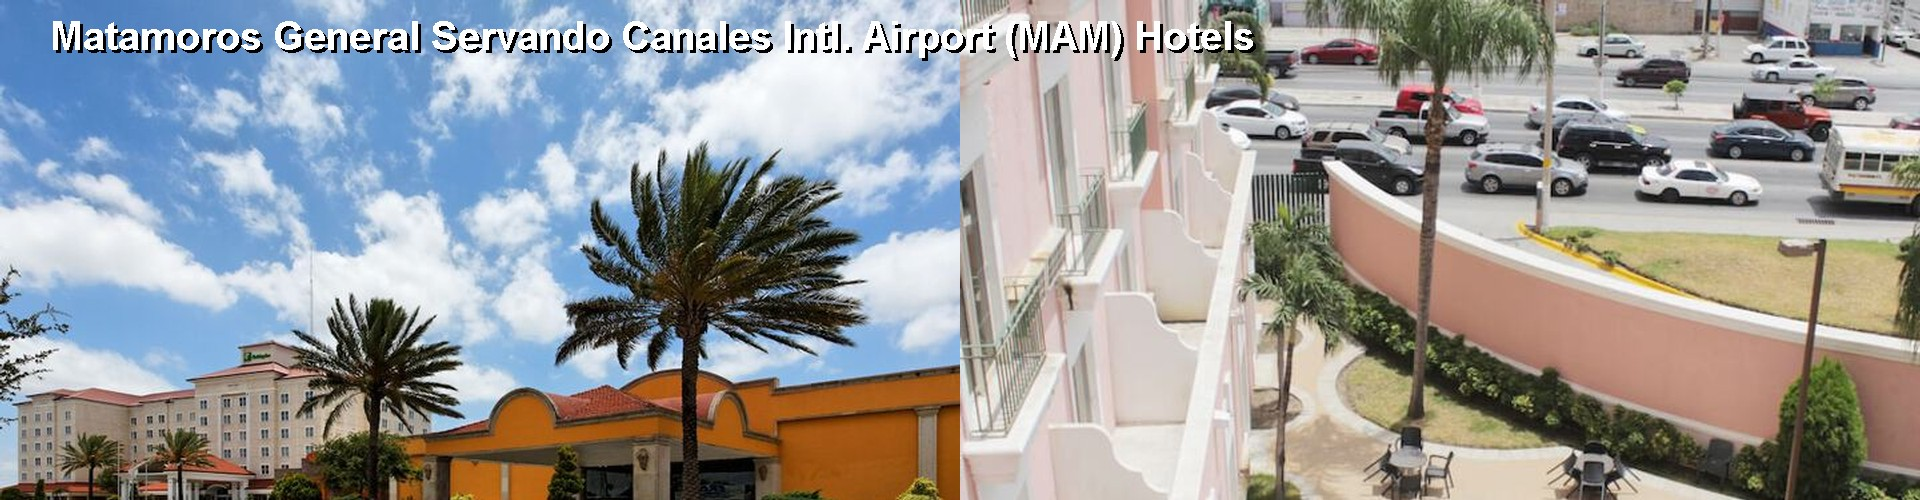 5 Best Hotels near Matamoros General Servando Canales Intl. Airport (MAM)